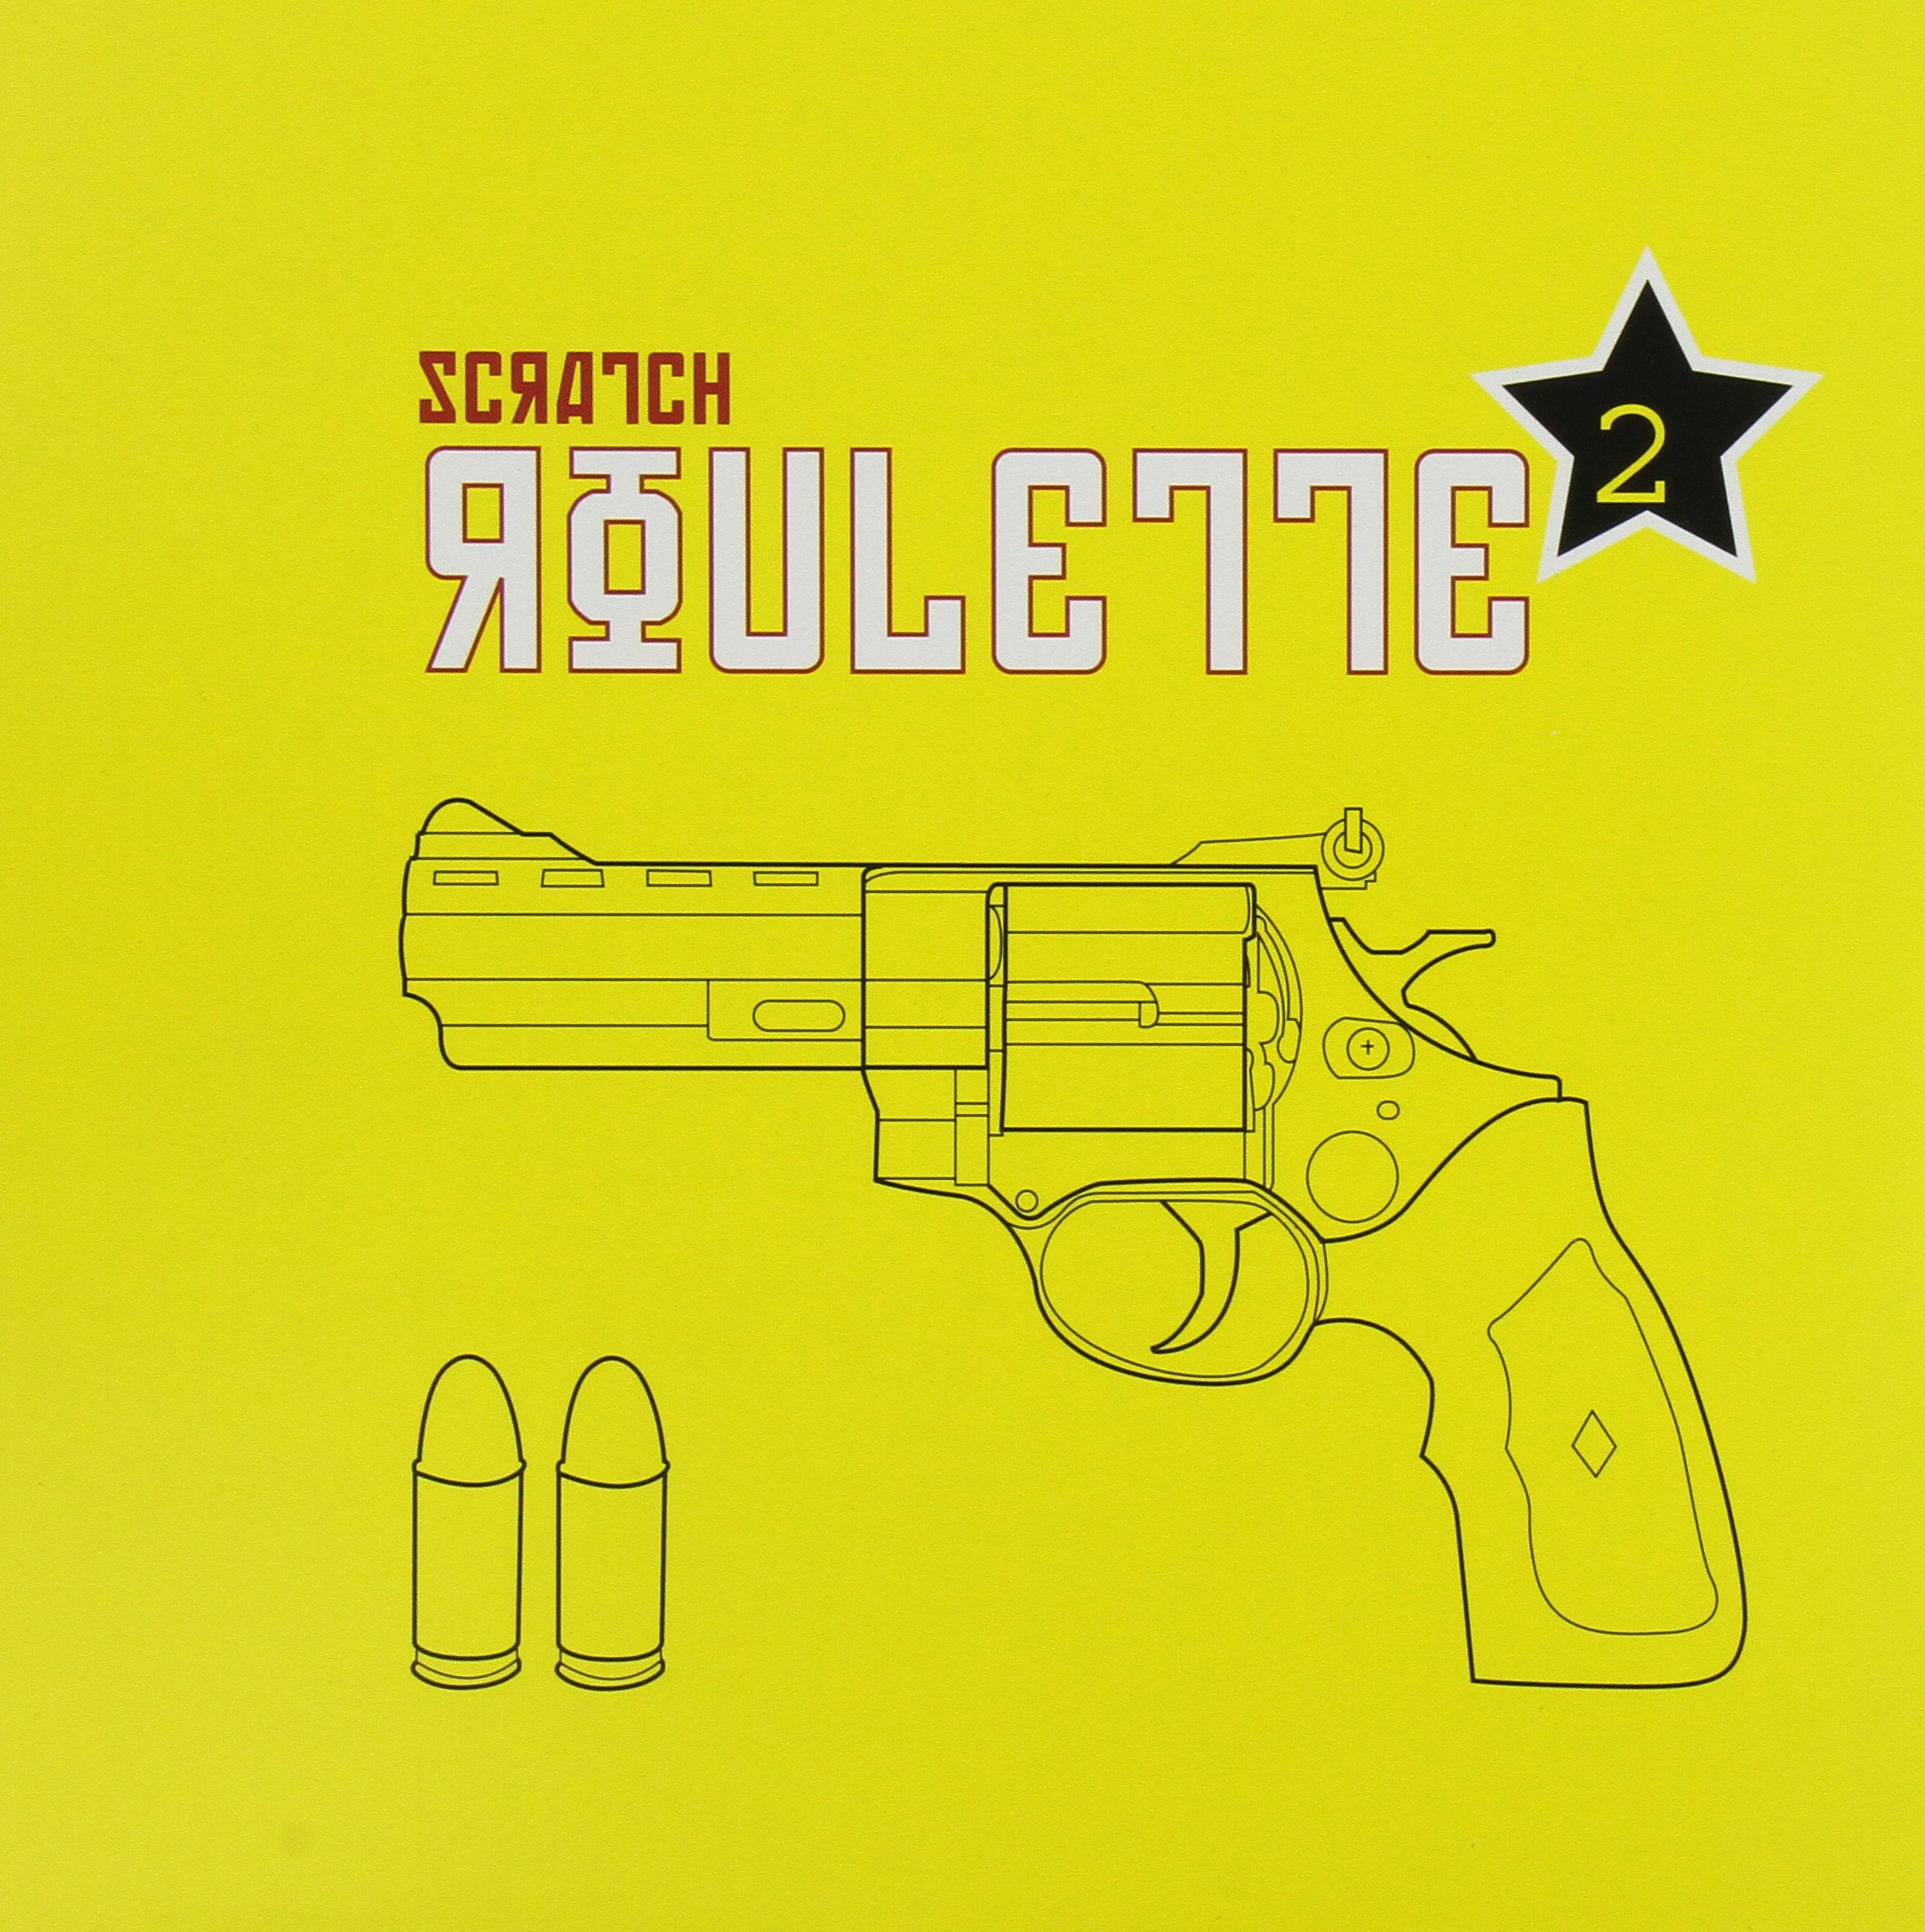 Scratch Roulette 2 by Ground Original